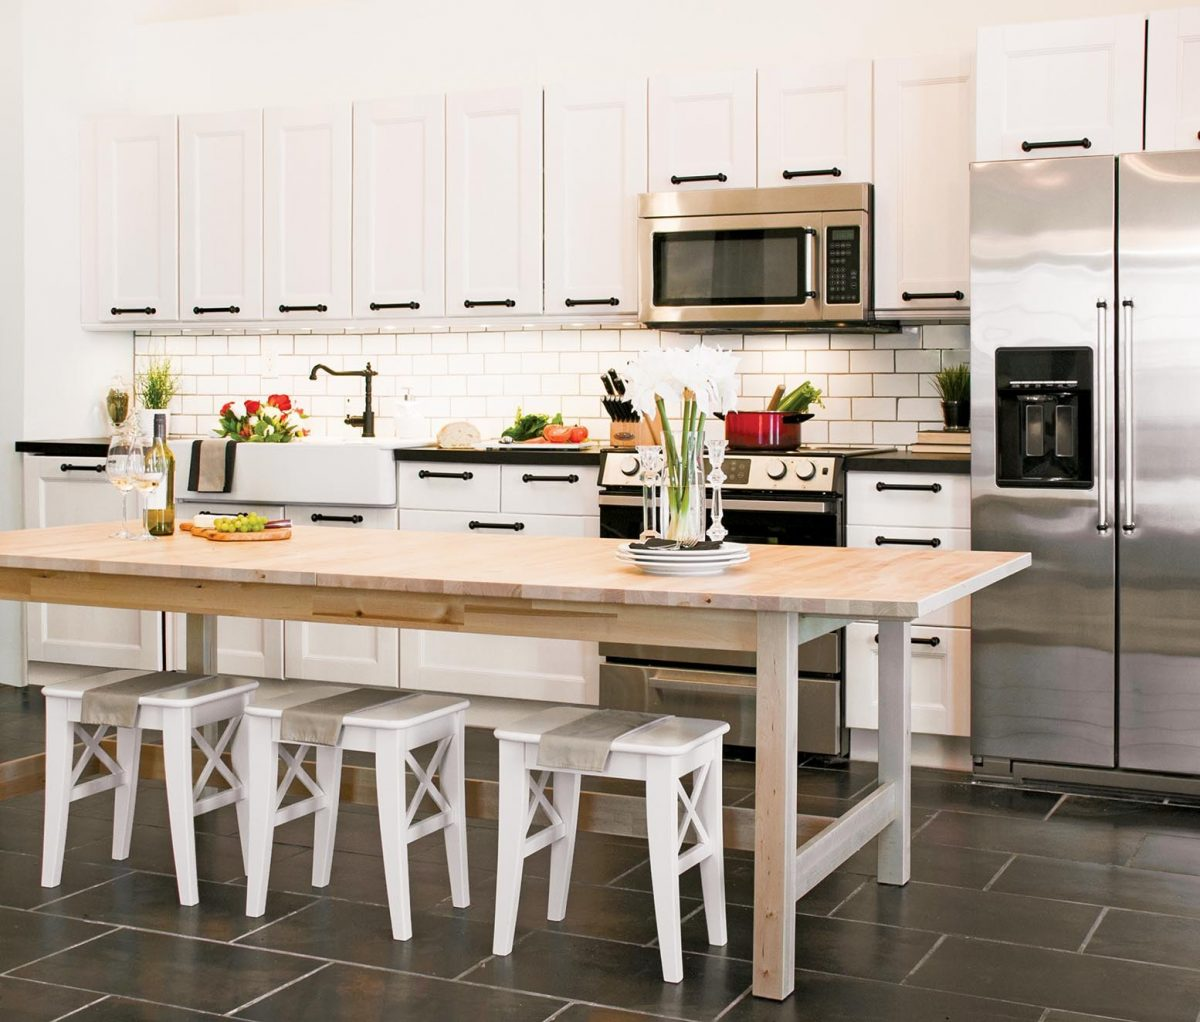 Create A Designer Kitchen On A Budget